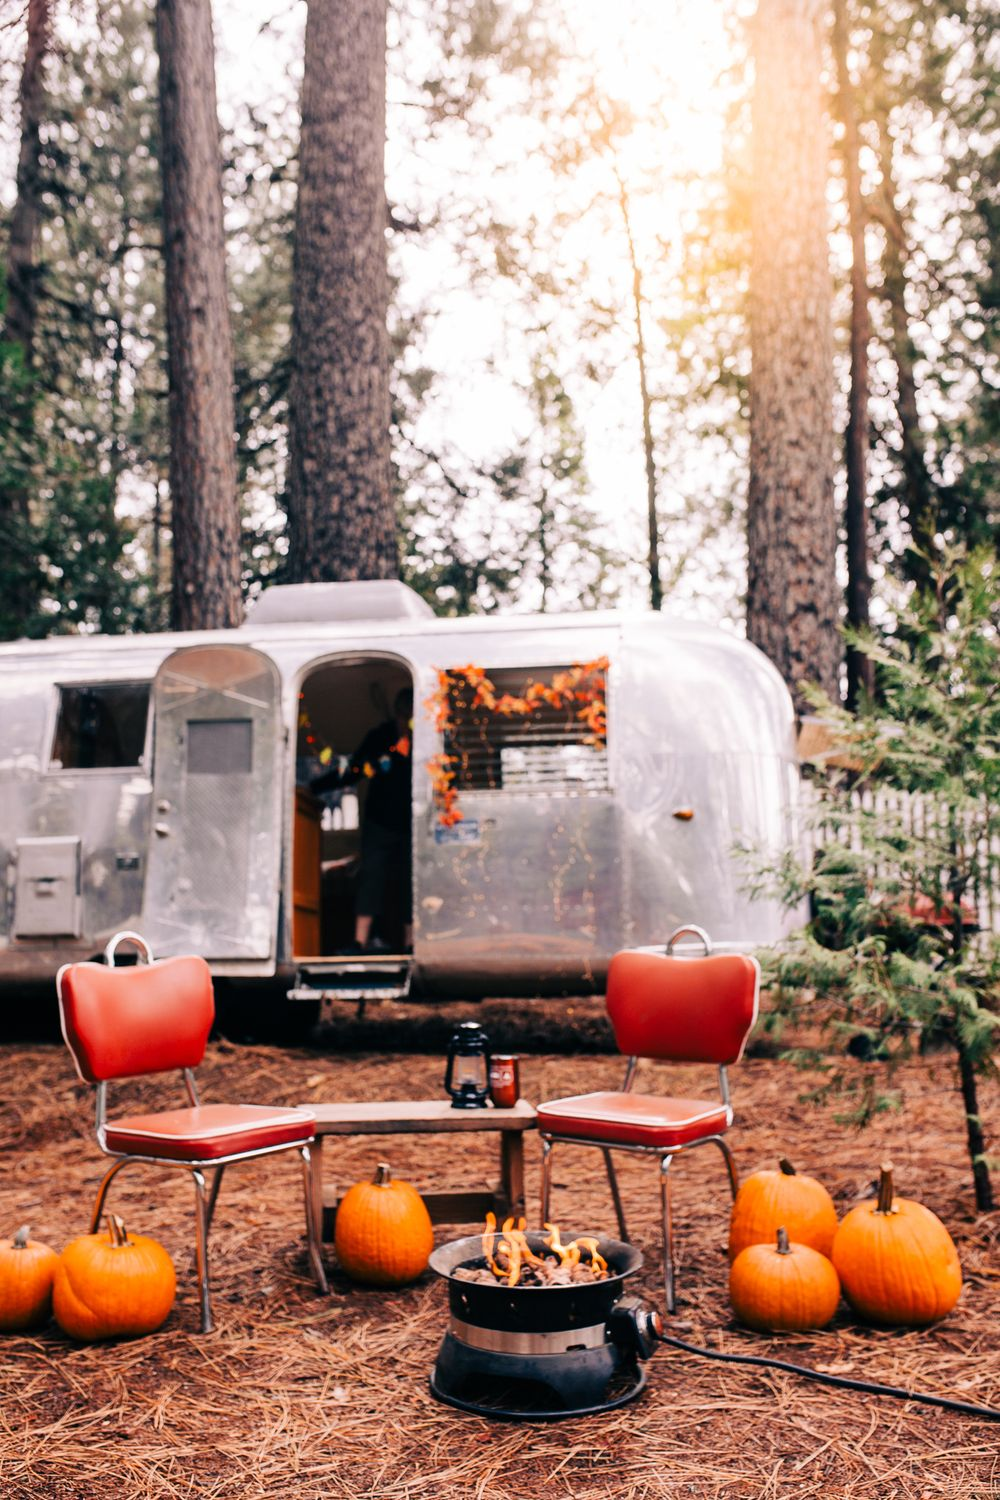 Autumn decorations at the Inn Town Campground in Nevada City, California | Lenkaland Photography